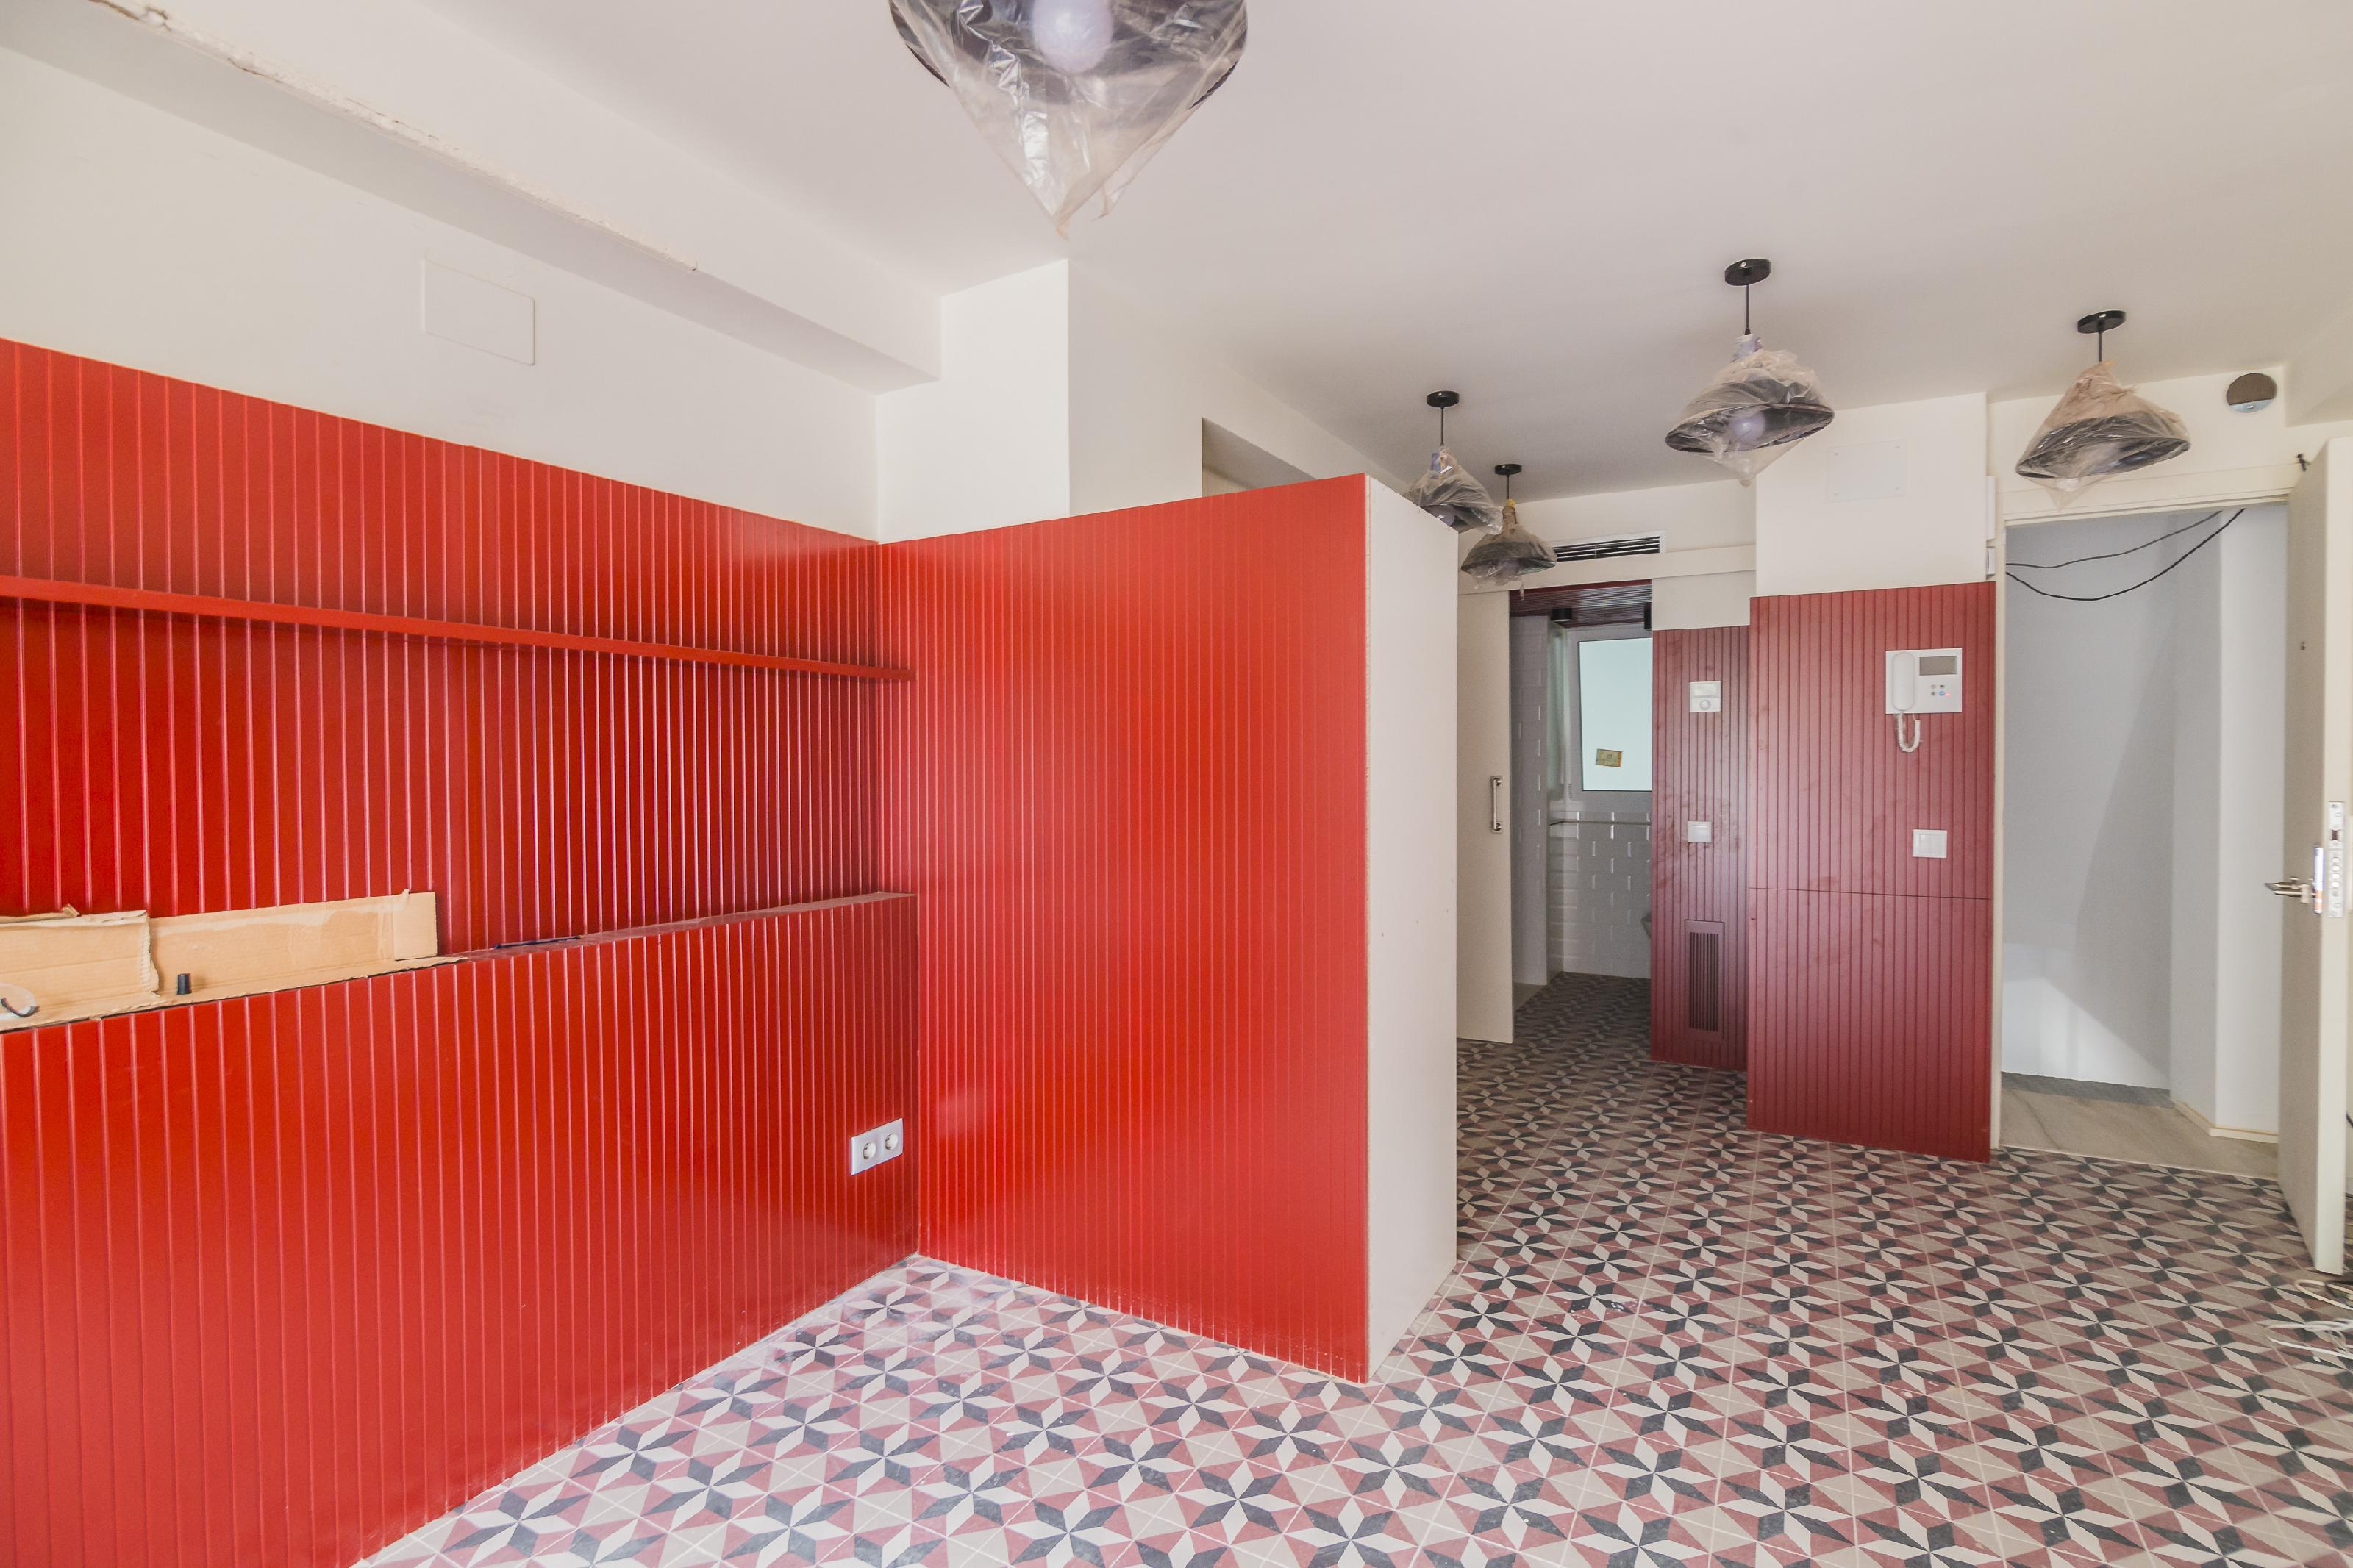 237520 Flat for sale in Ciutat Vella, St. Pere St. Caterina and La Ribera 4